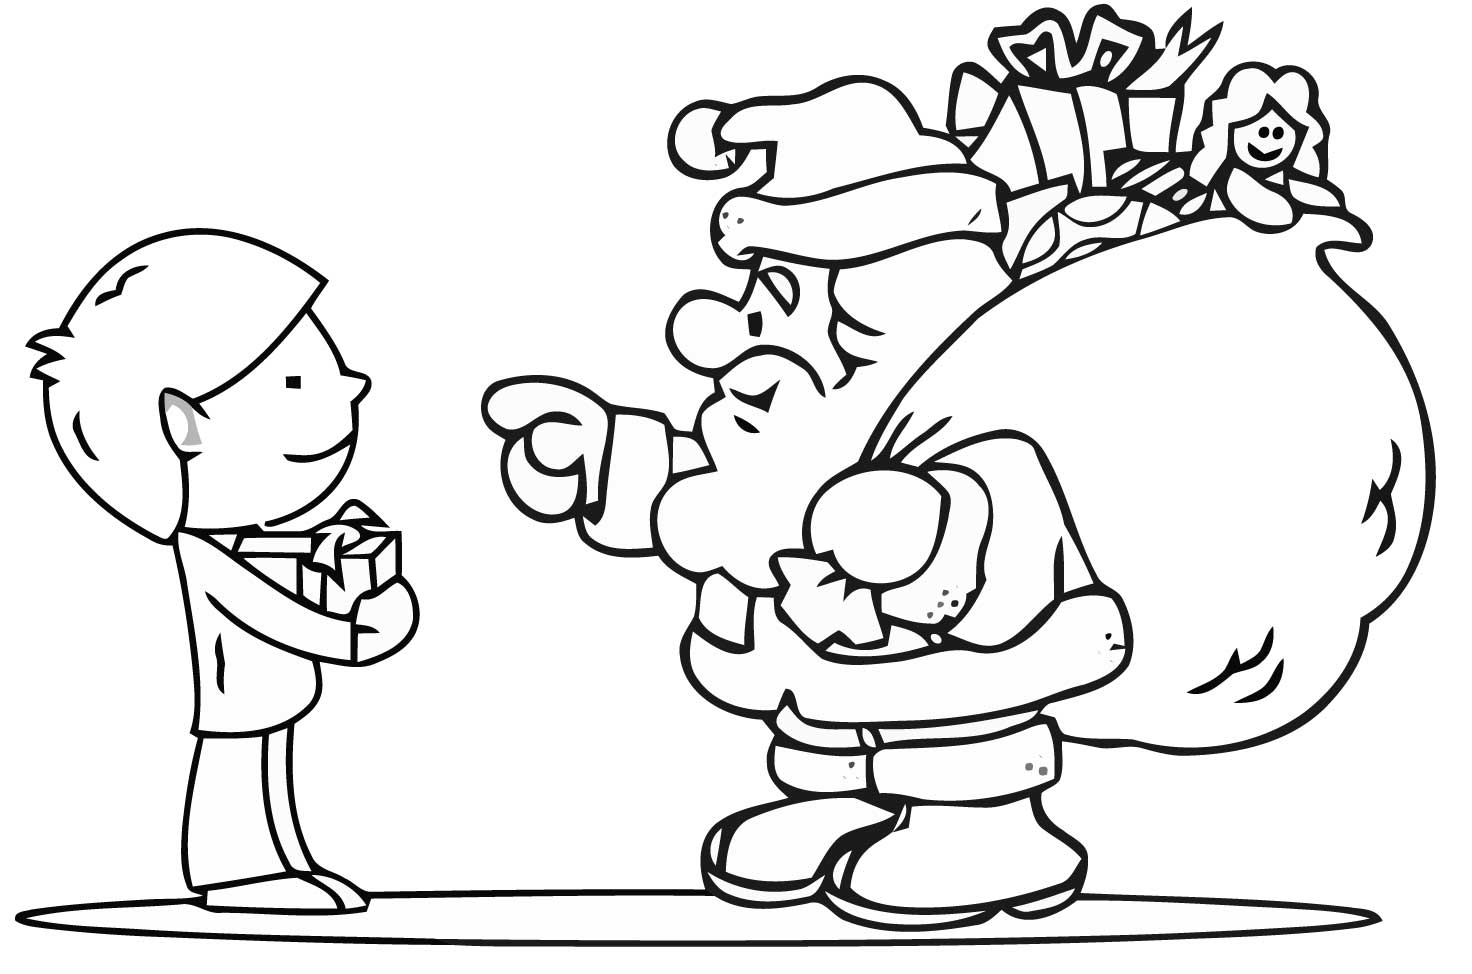 coloring pictures of santa claus free christmas colouring pages for children kids online santa claus pictures coloring of